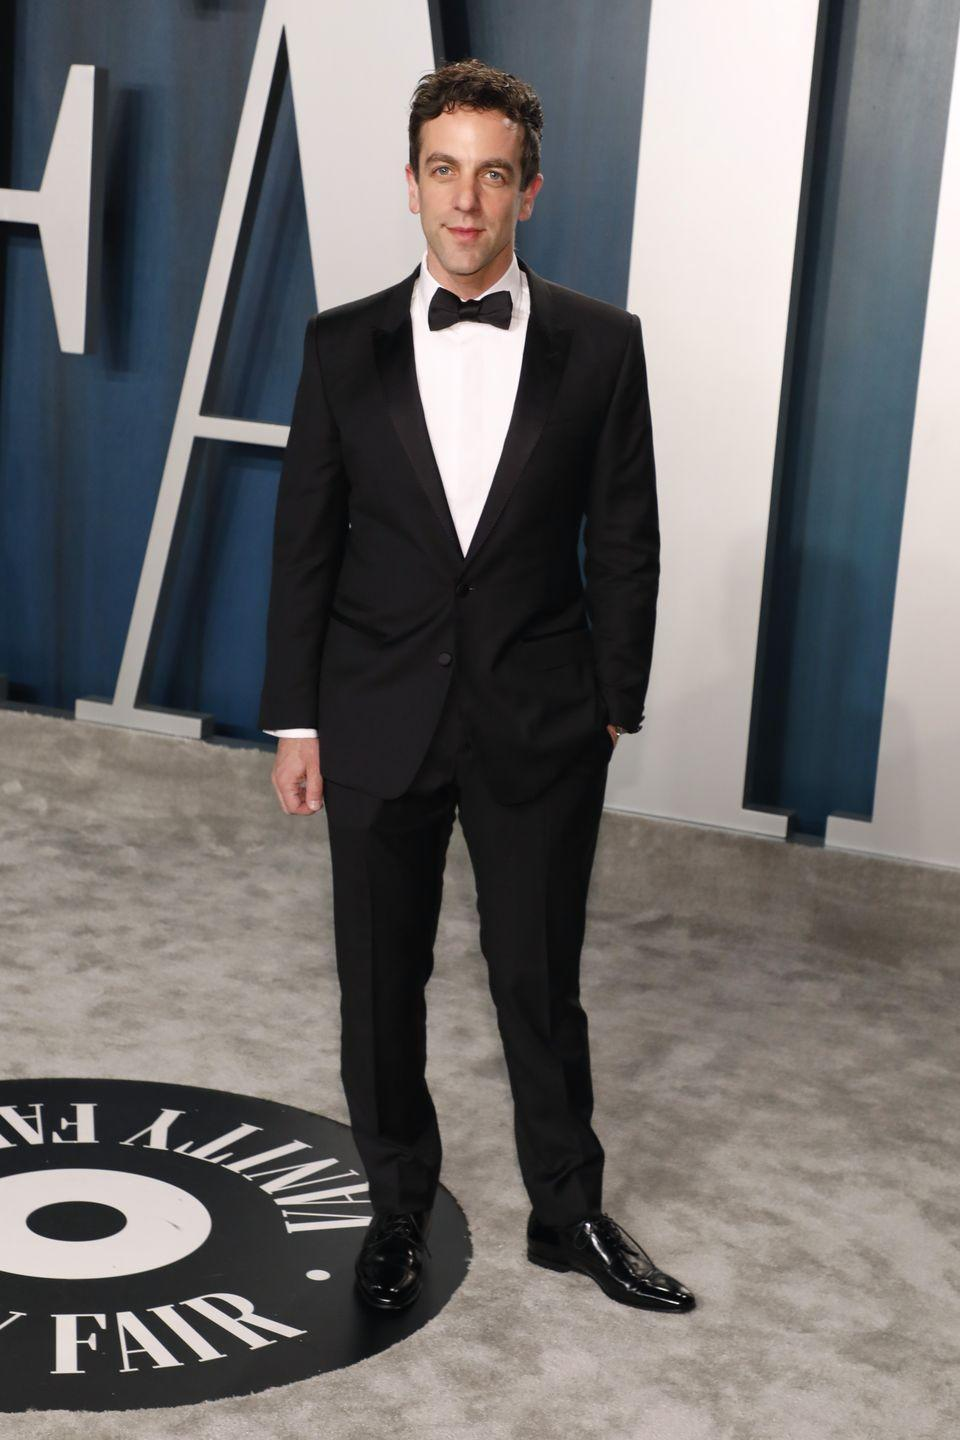 <p>The actor, writer and producer attended Harvard University after high school, where he graduated in 2001.</p>